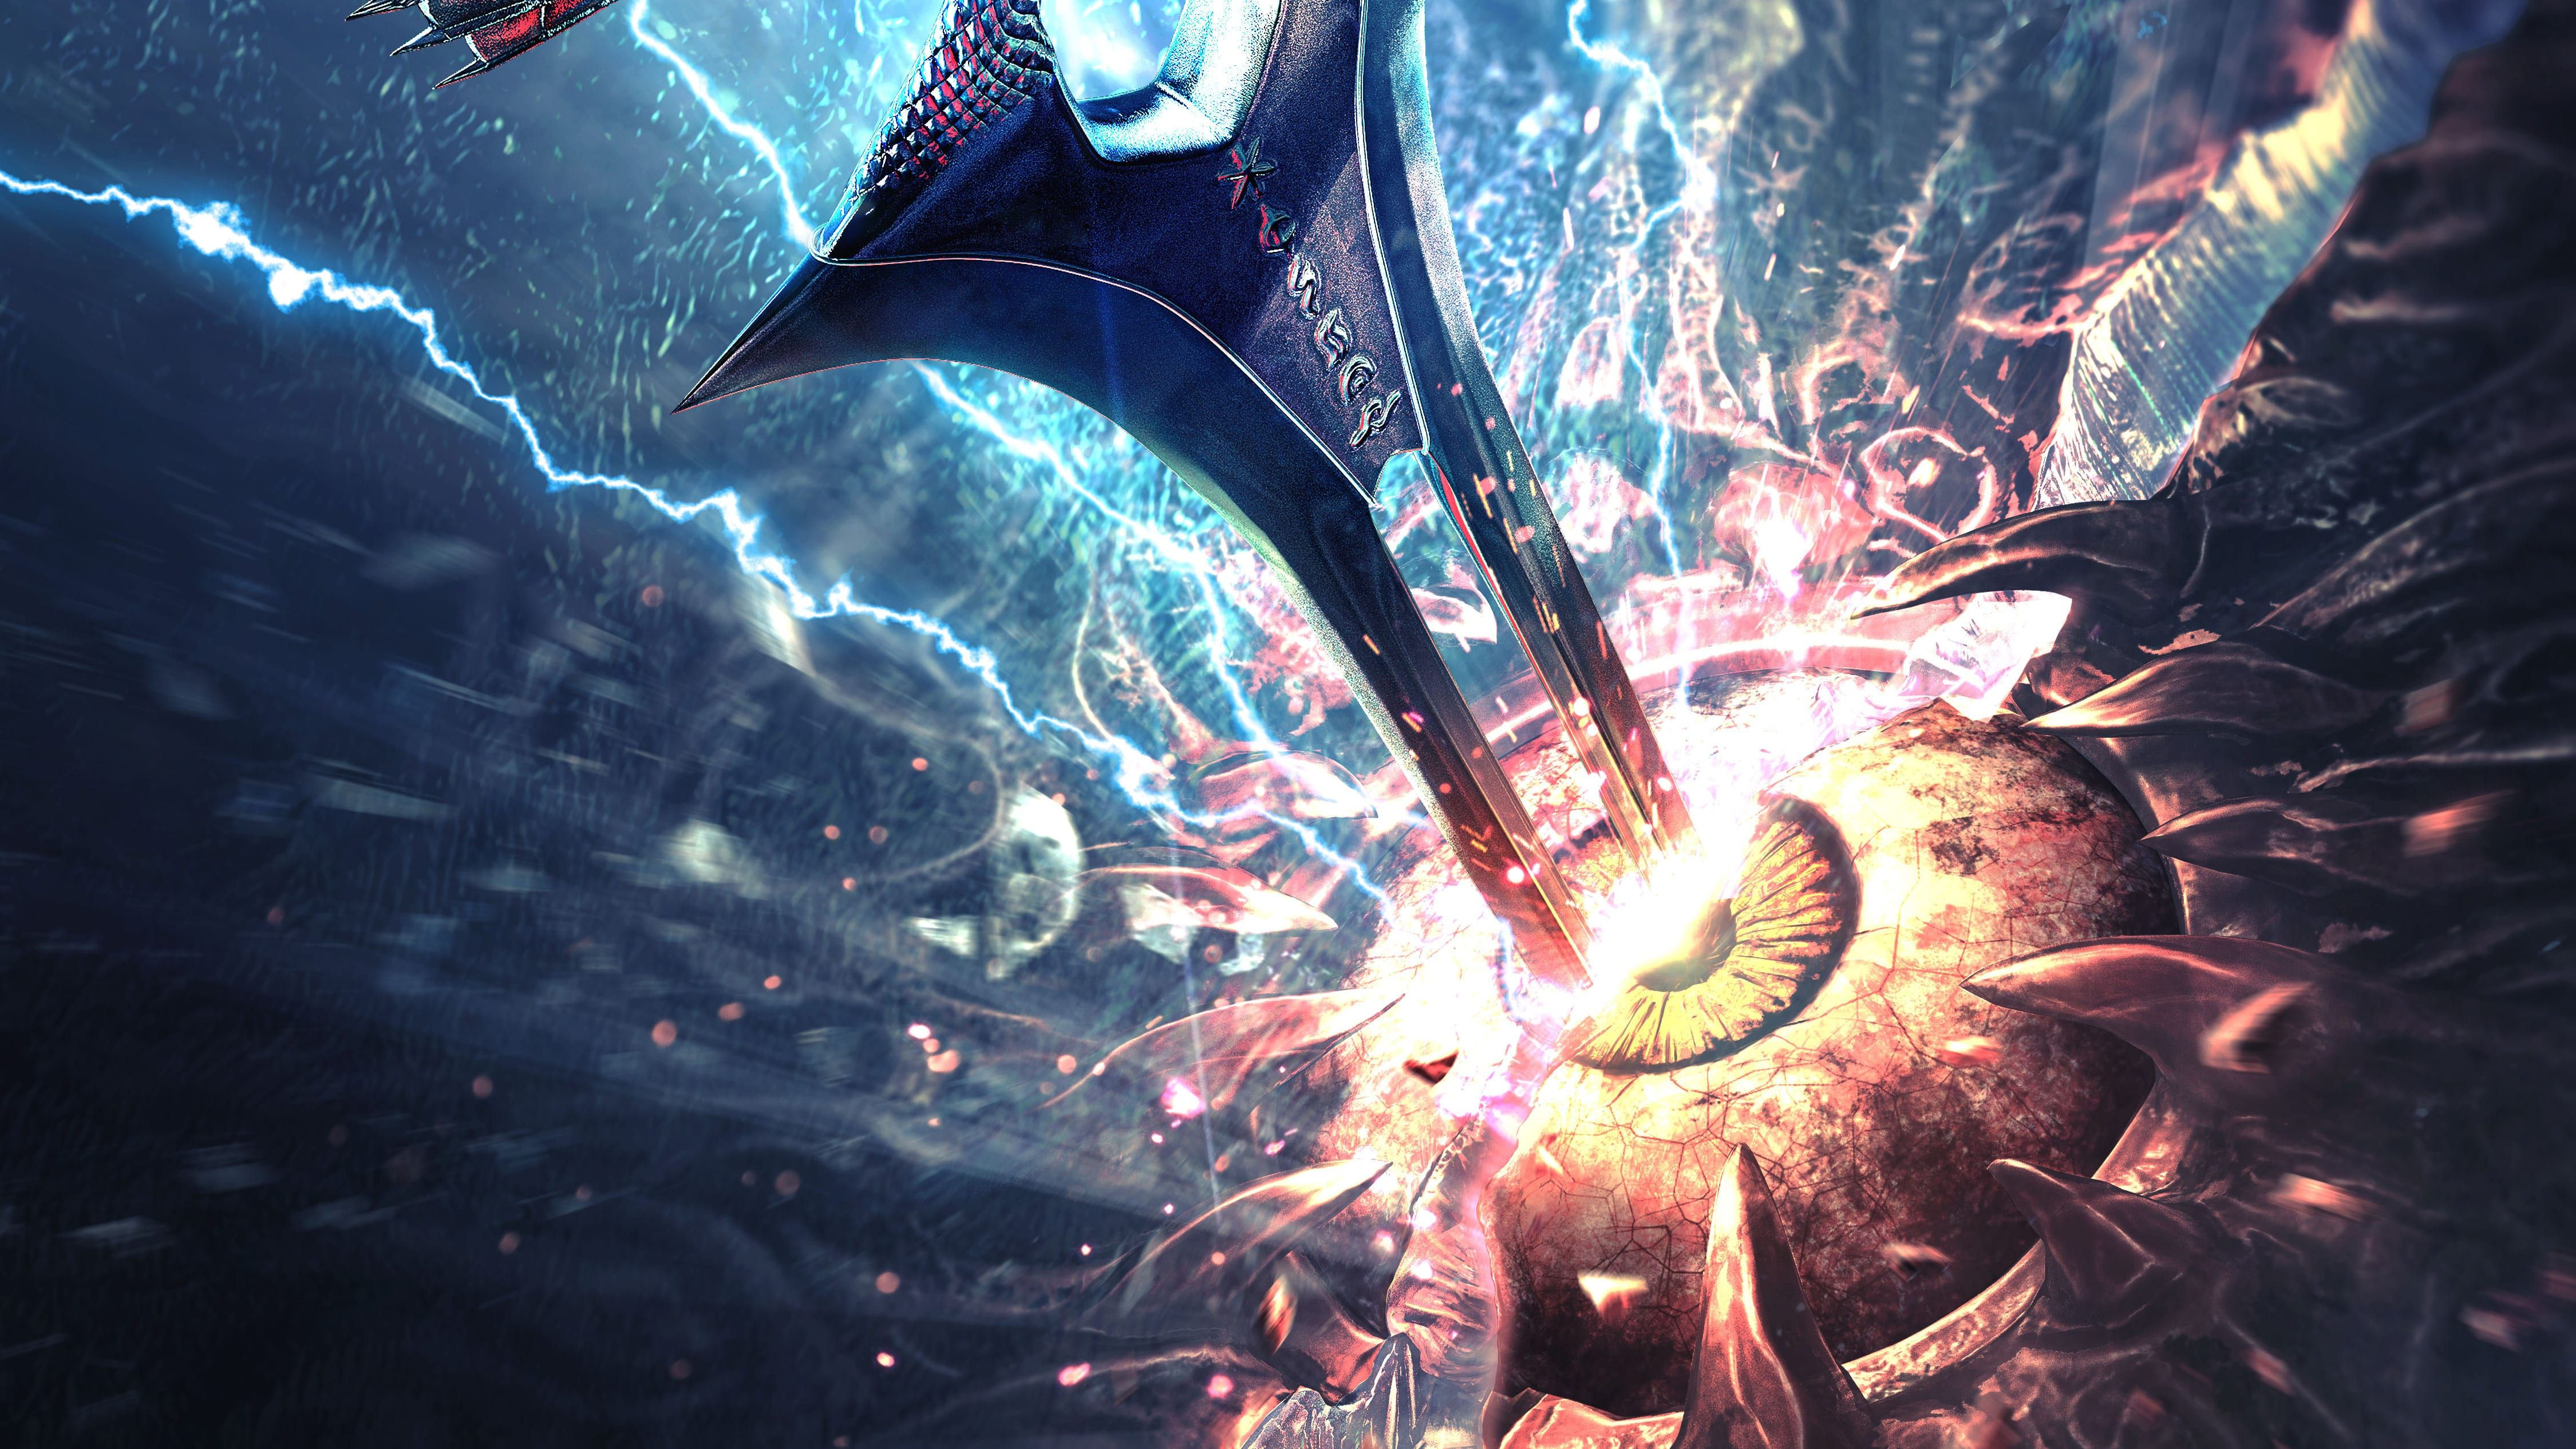 Soulcalibur Epic Game Poster Best Gaming Wallpapers Epic Games